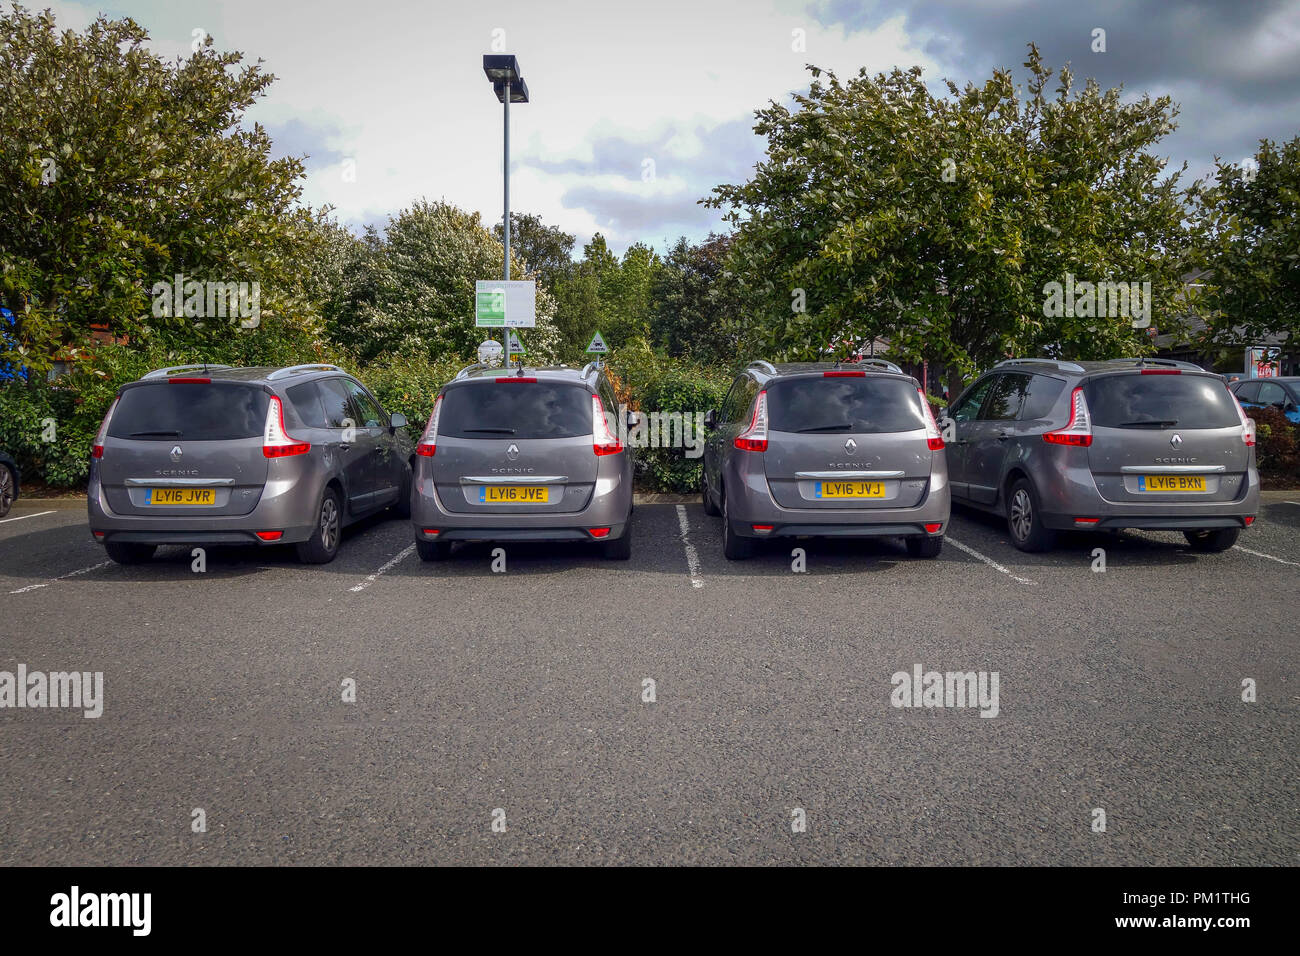 4 Matching Renault Scenic Cars Parked together at Durham A1 Motorway Services - Stock Image